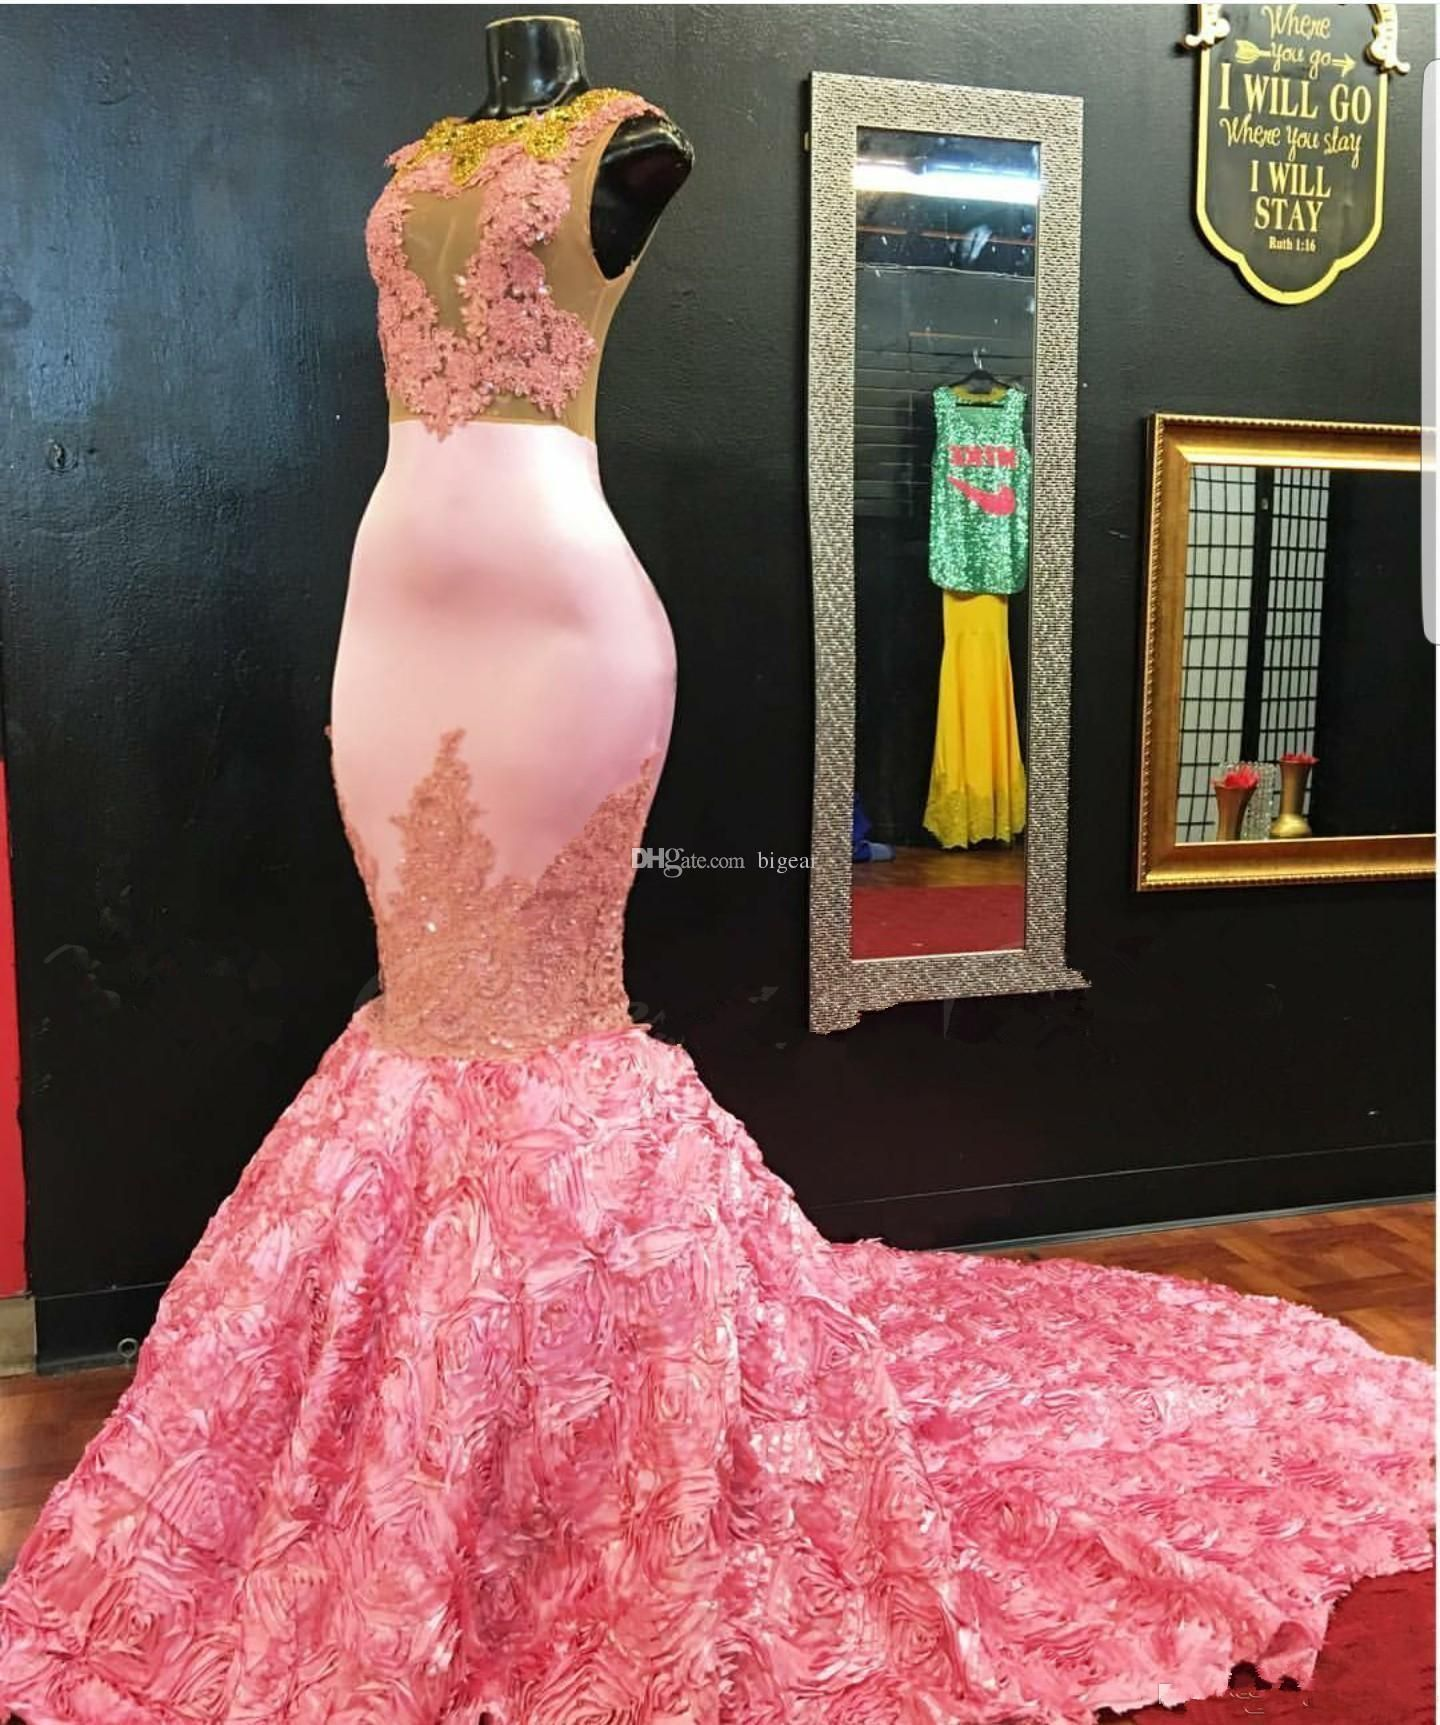 Pink Mermaid Prom Dress with 3D Floral Skirt | Vestido de gala y ...